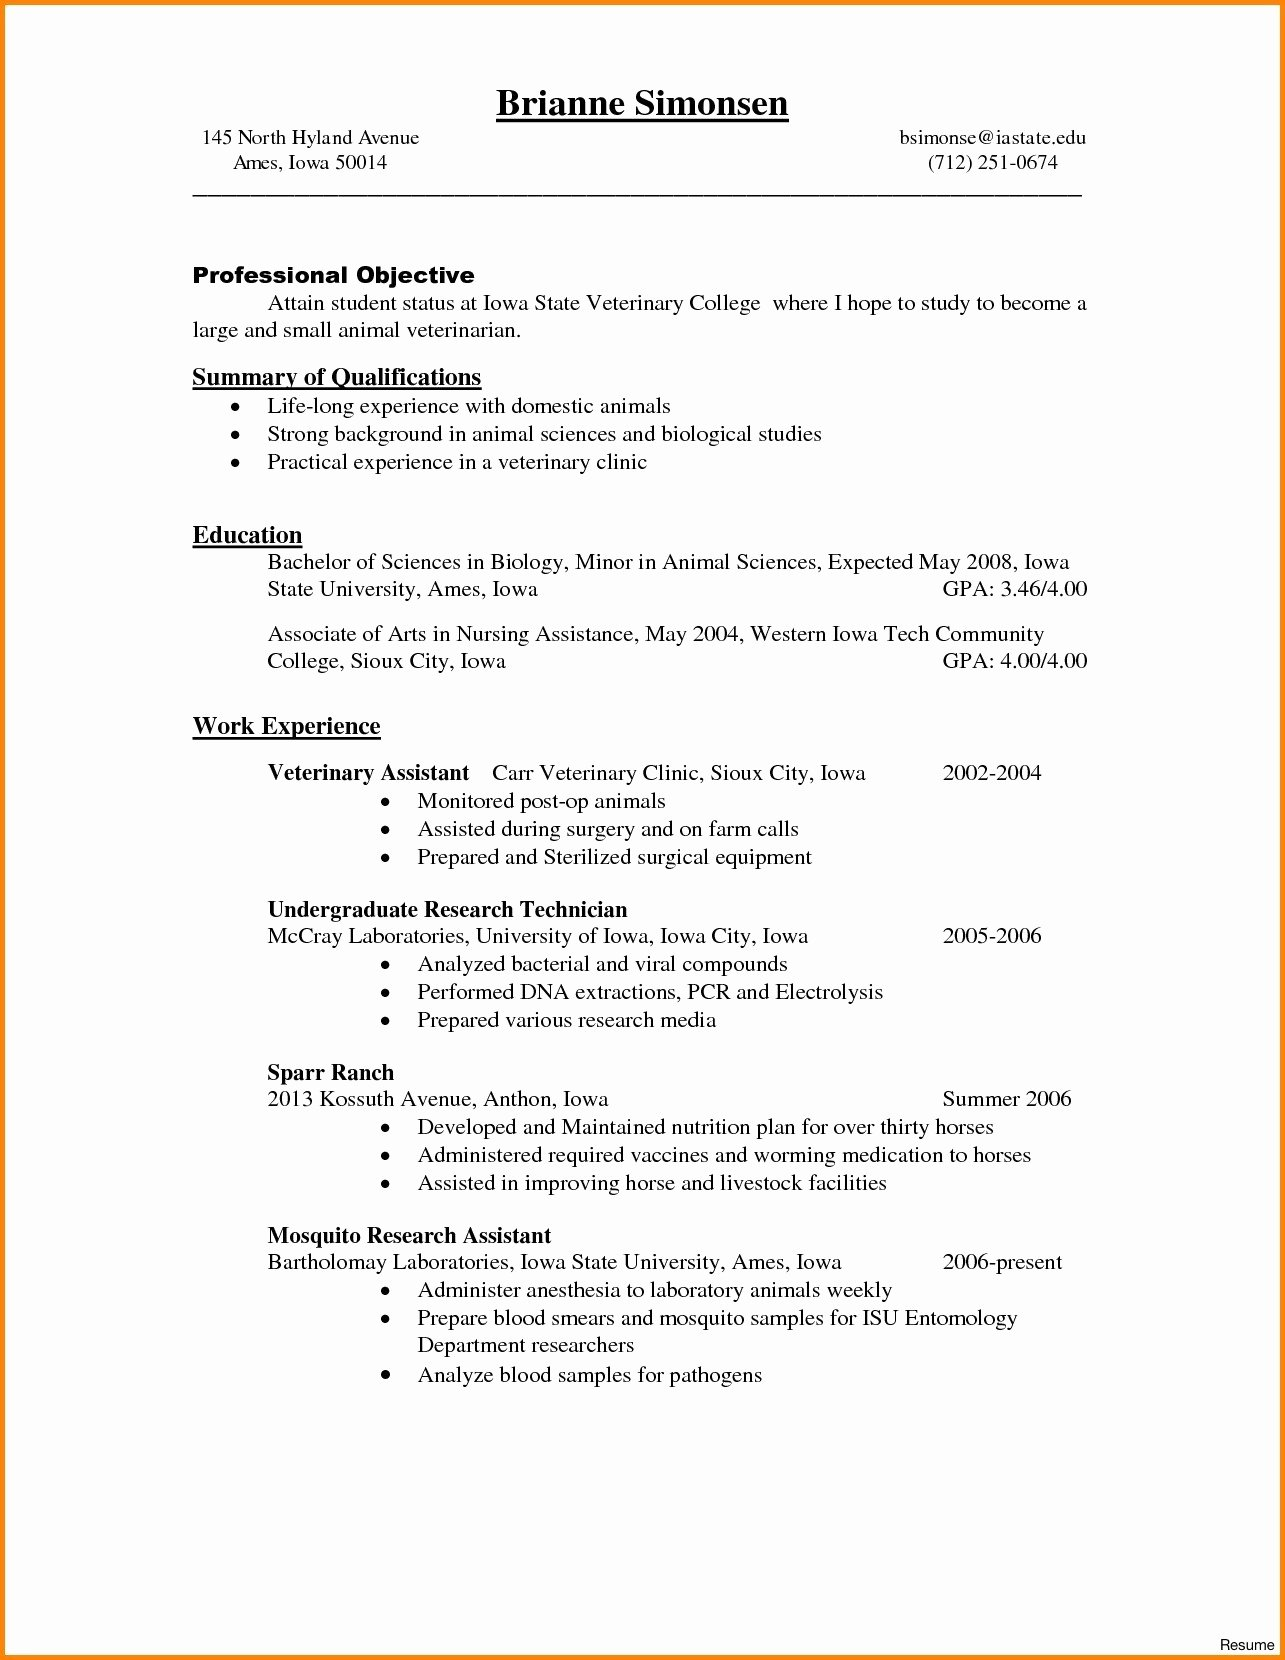 Biology Research assistant Resume Awesome 10 11 Biology Research assistant Resume